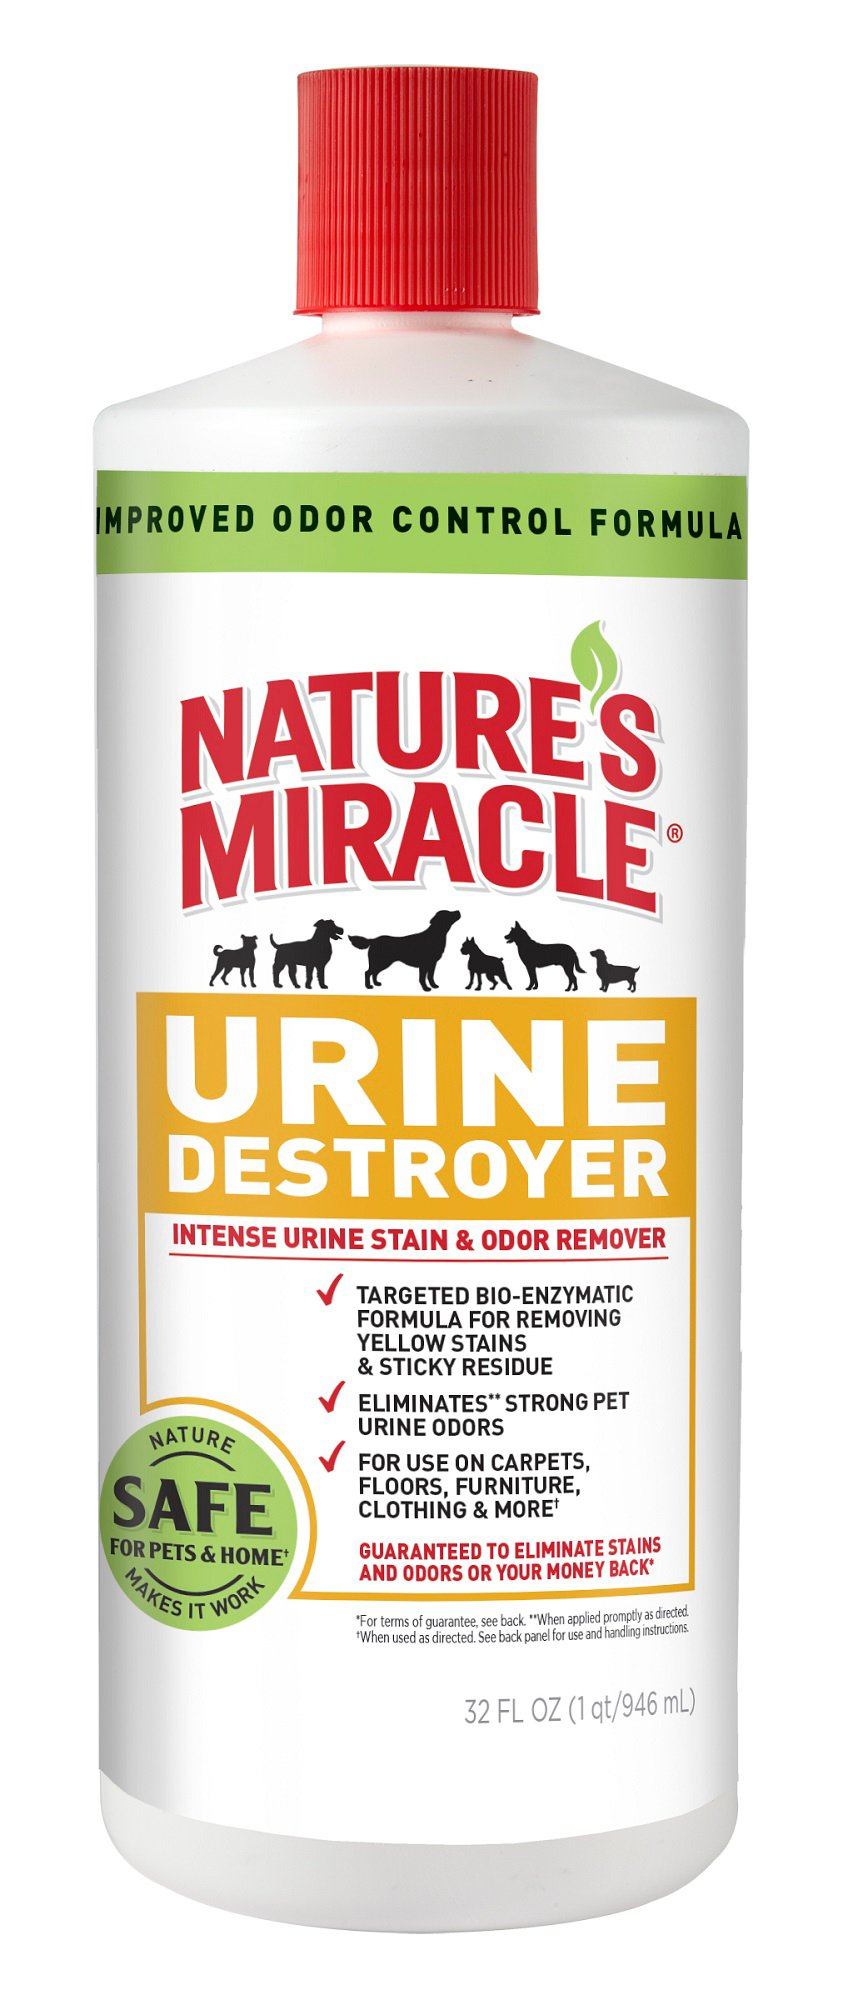 How To Remove Old Human Urine Smell From Carpet